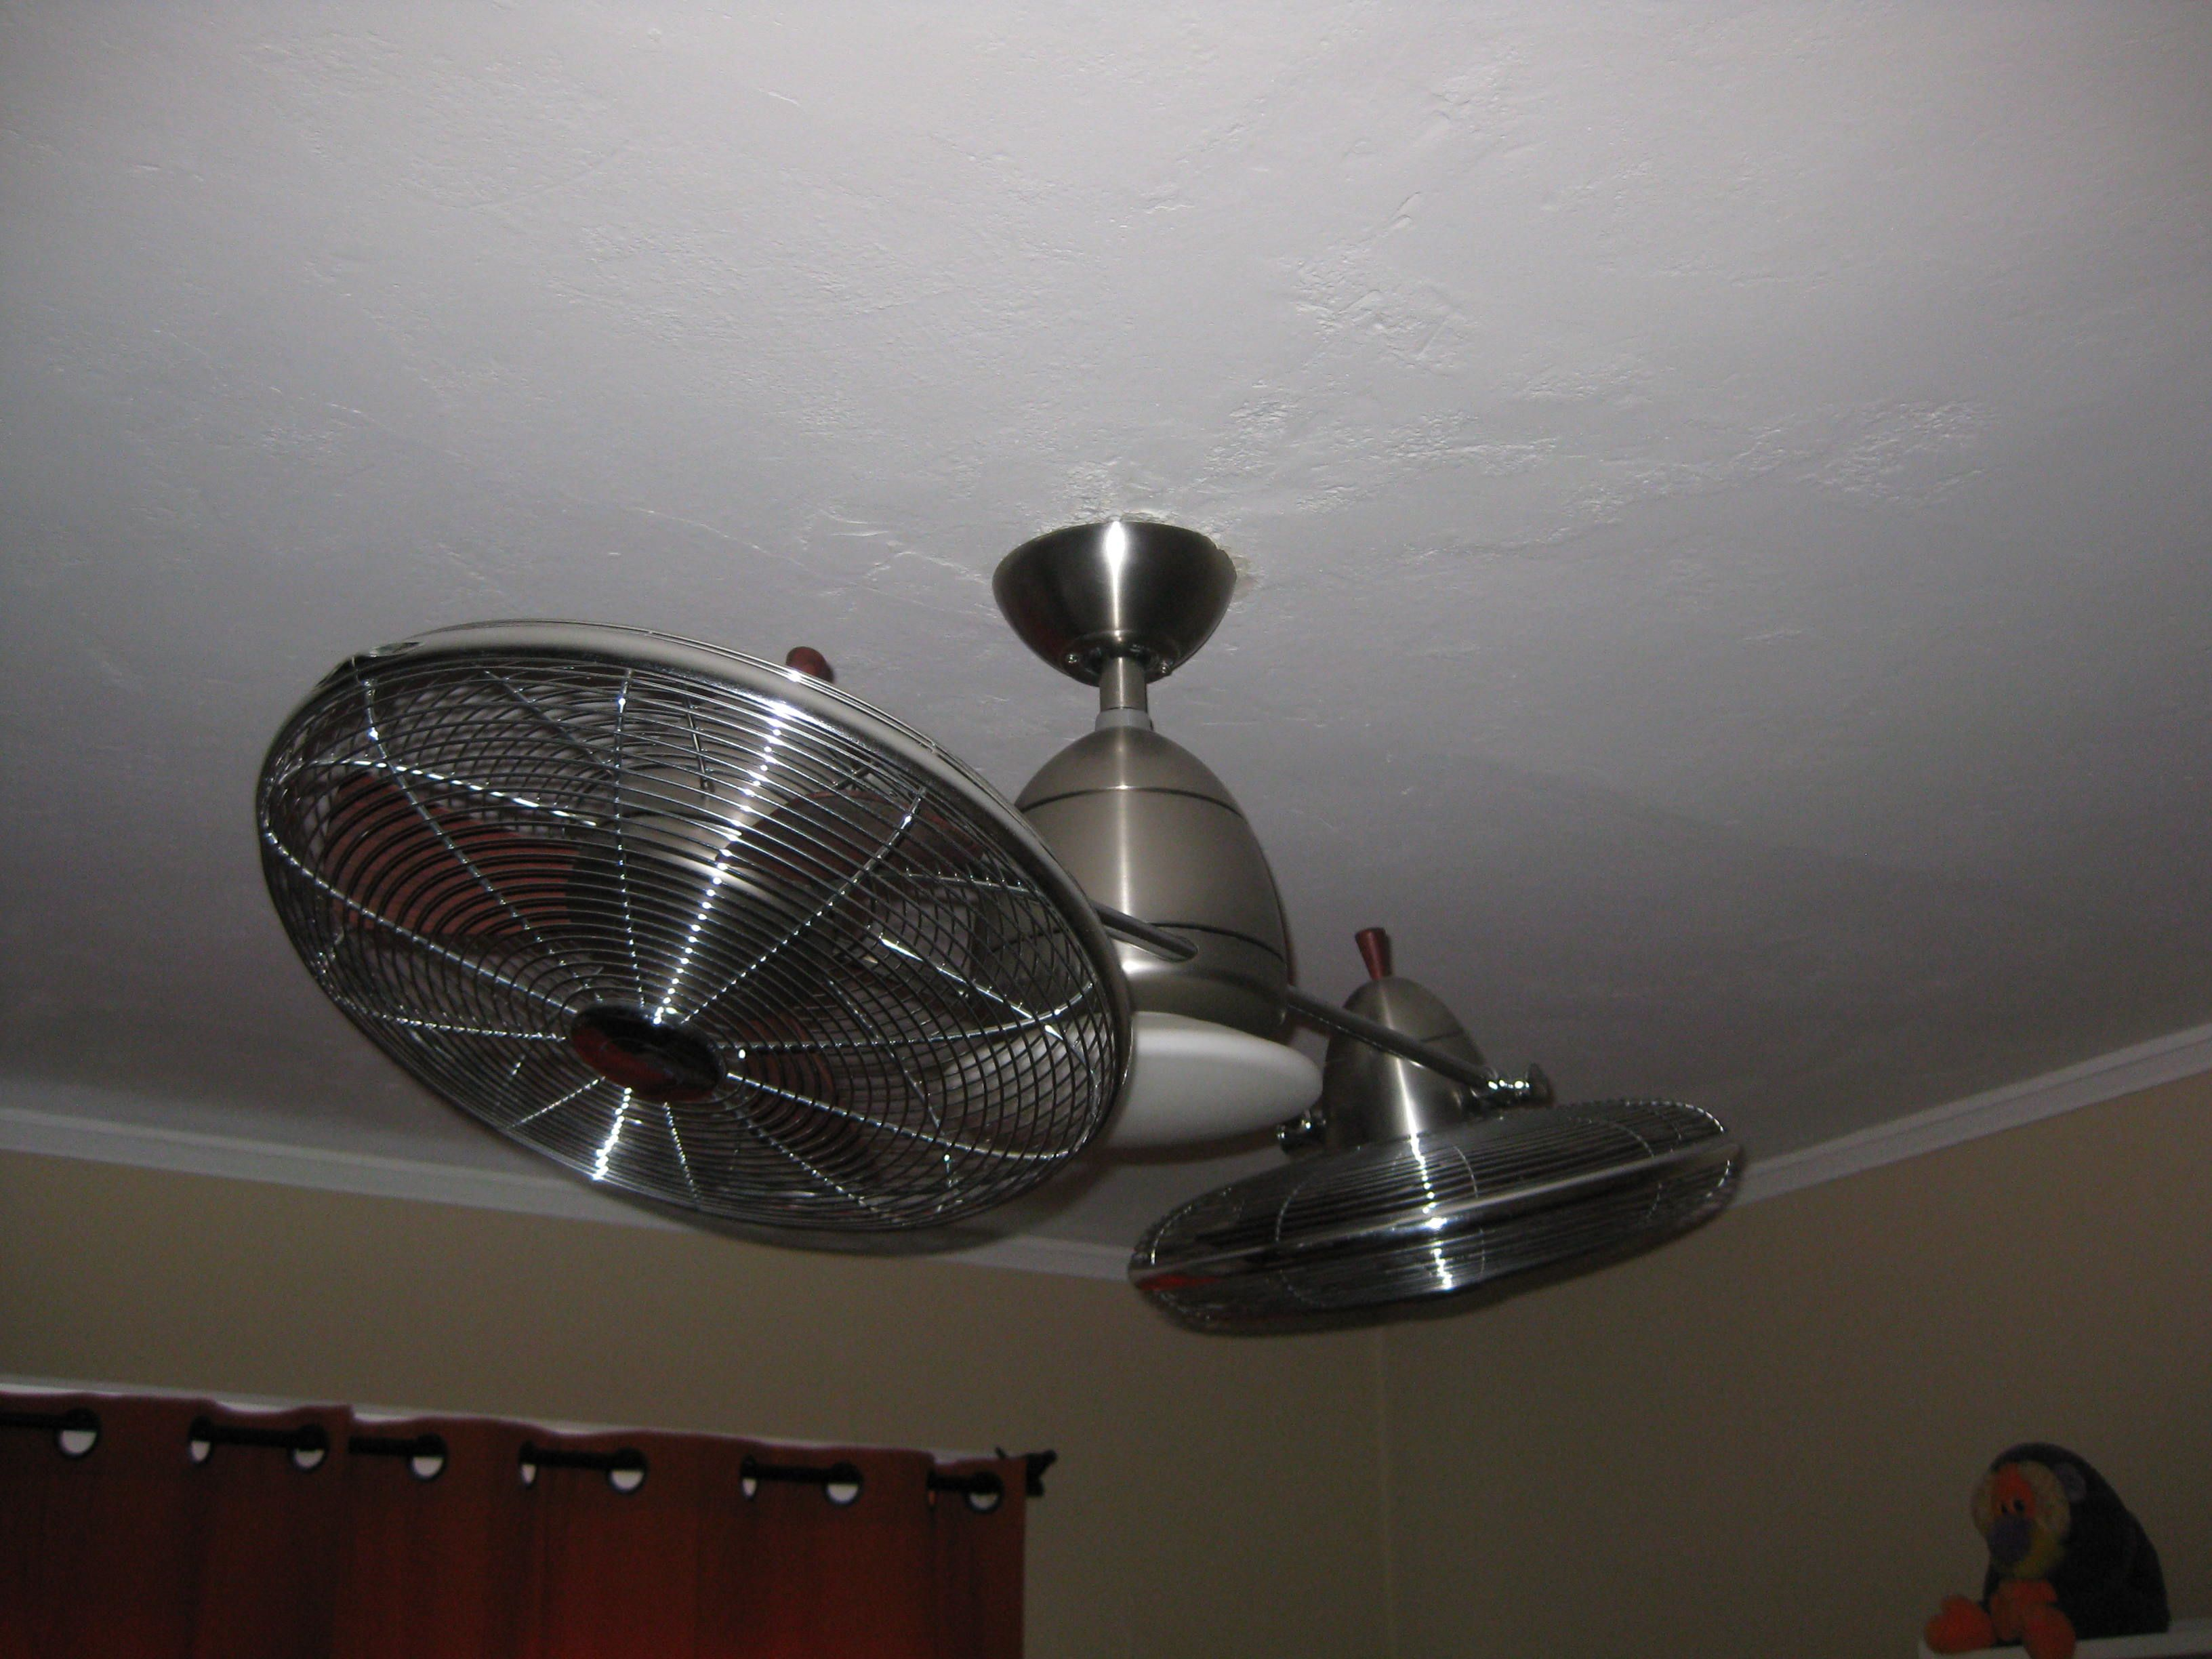 Restoration hardware ceiling fan fans pinterest restoration restoration hardware ceiling fan aloadofball Image collections